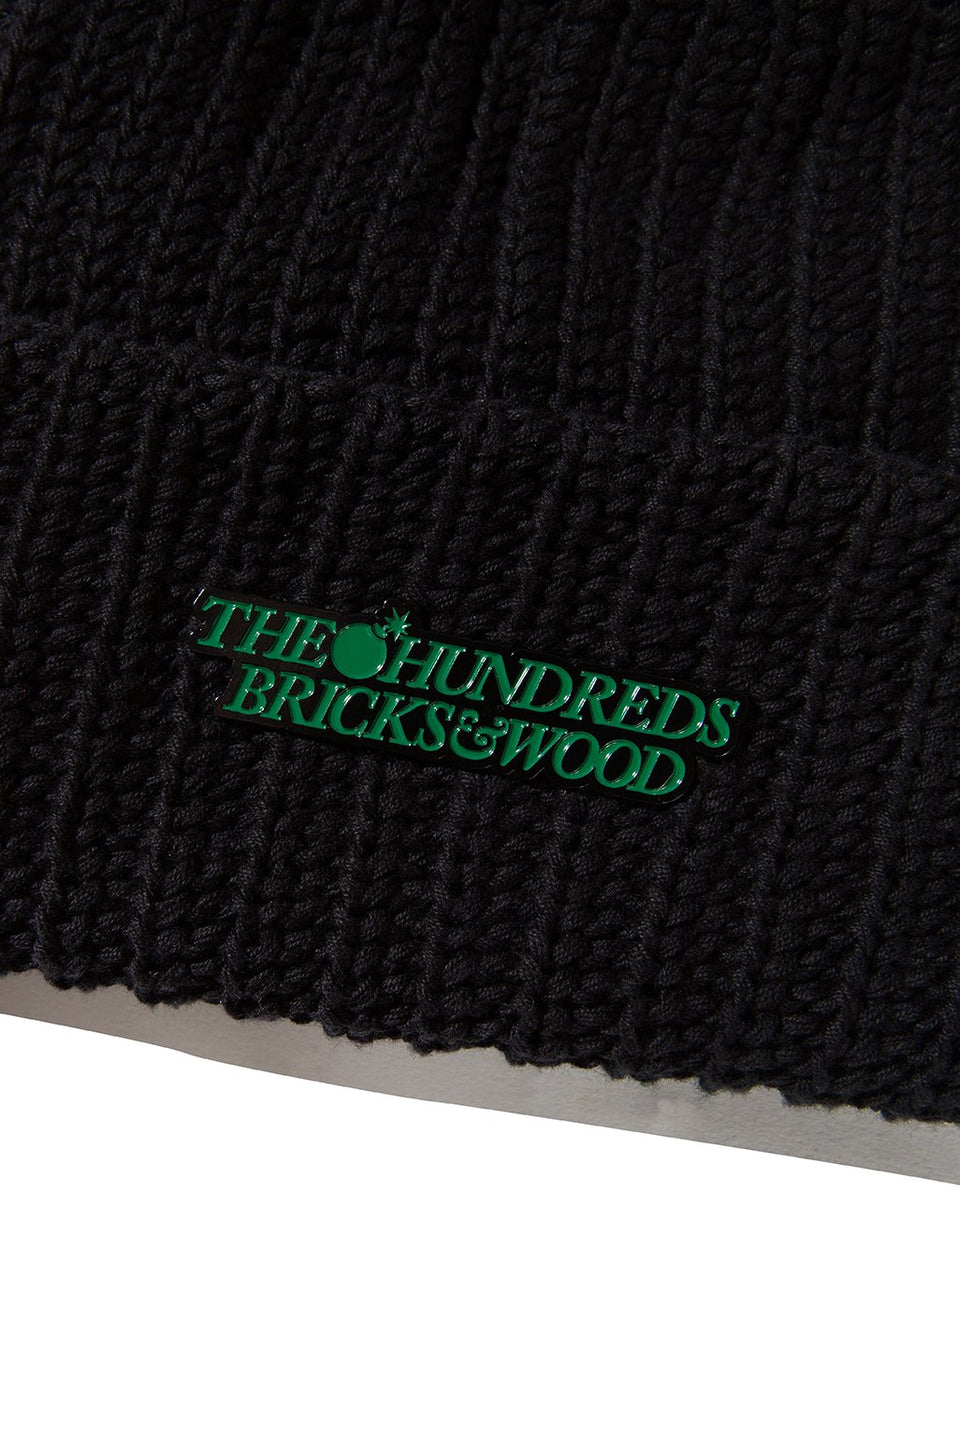 Bricks & Wood Beanie